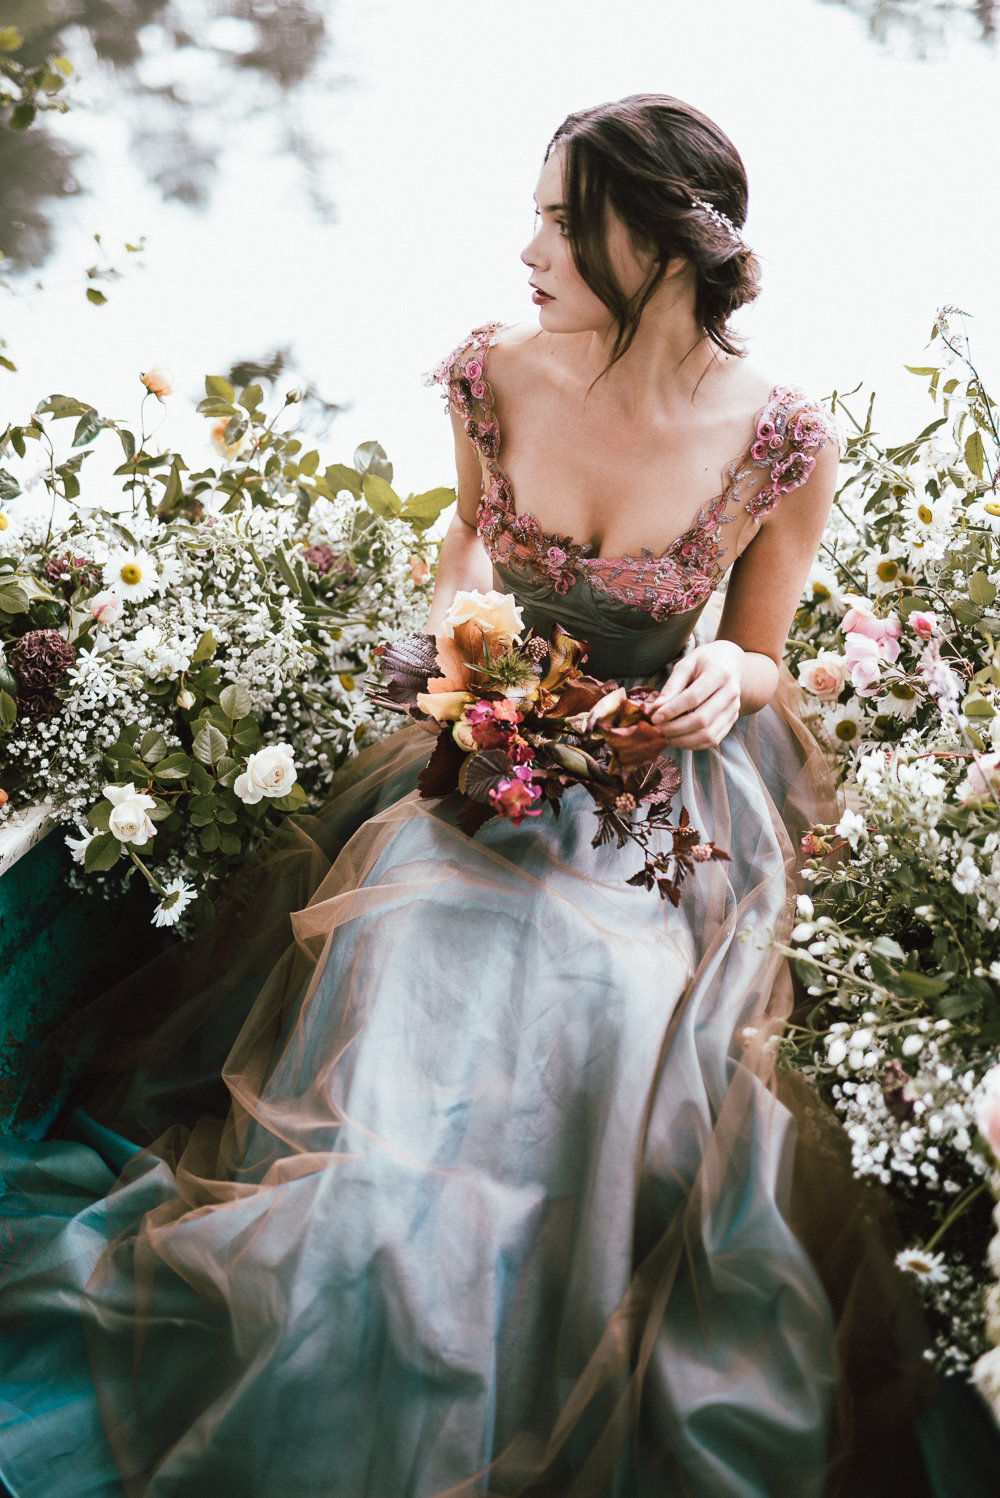 Belle-Epoque-floral-embroidered-wedding-dress-JoanneFlemingDesign-DavidWickhamPhoto (8)